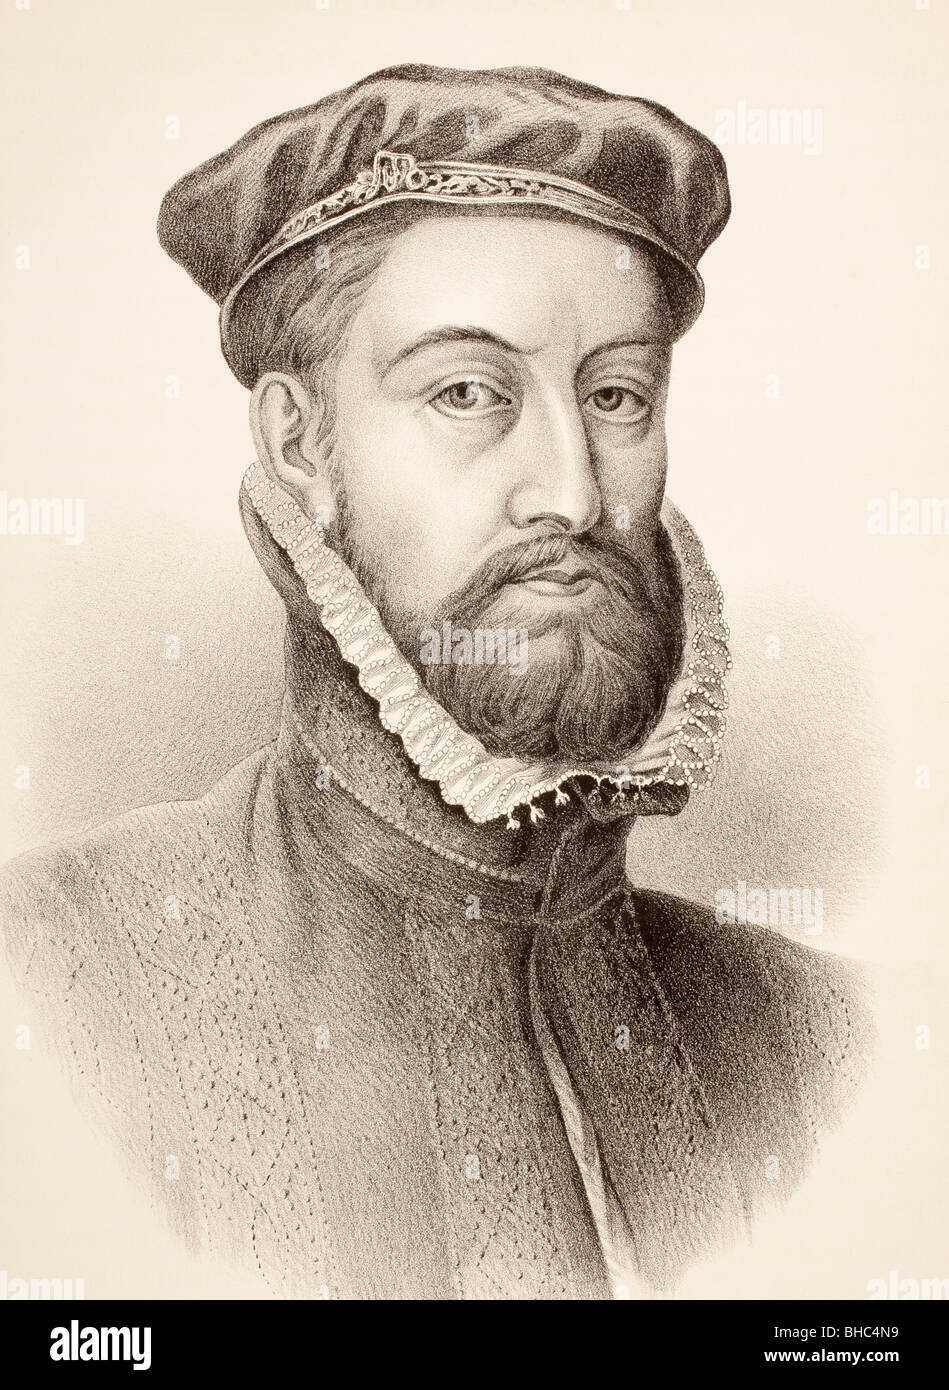 James Stewart, 1st Earl of Moray c. 1531 – 1570. Regent of Scotland. - Stock Image